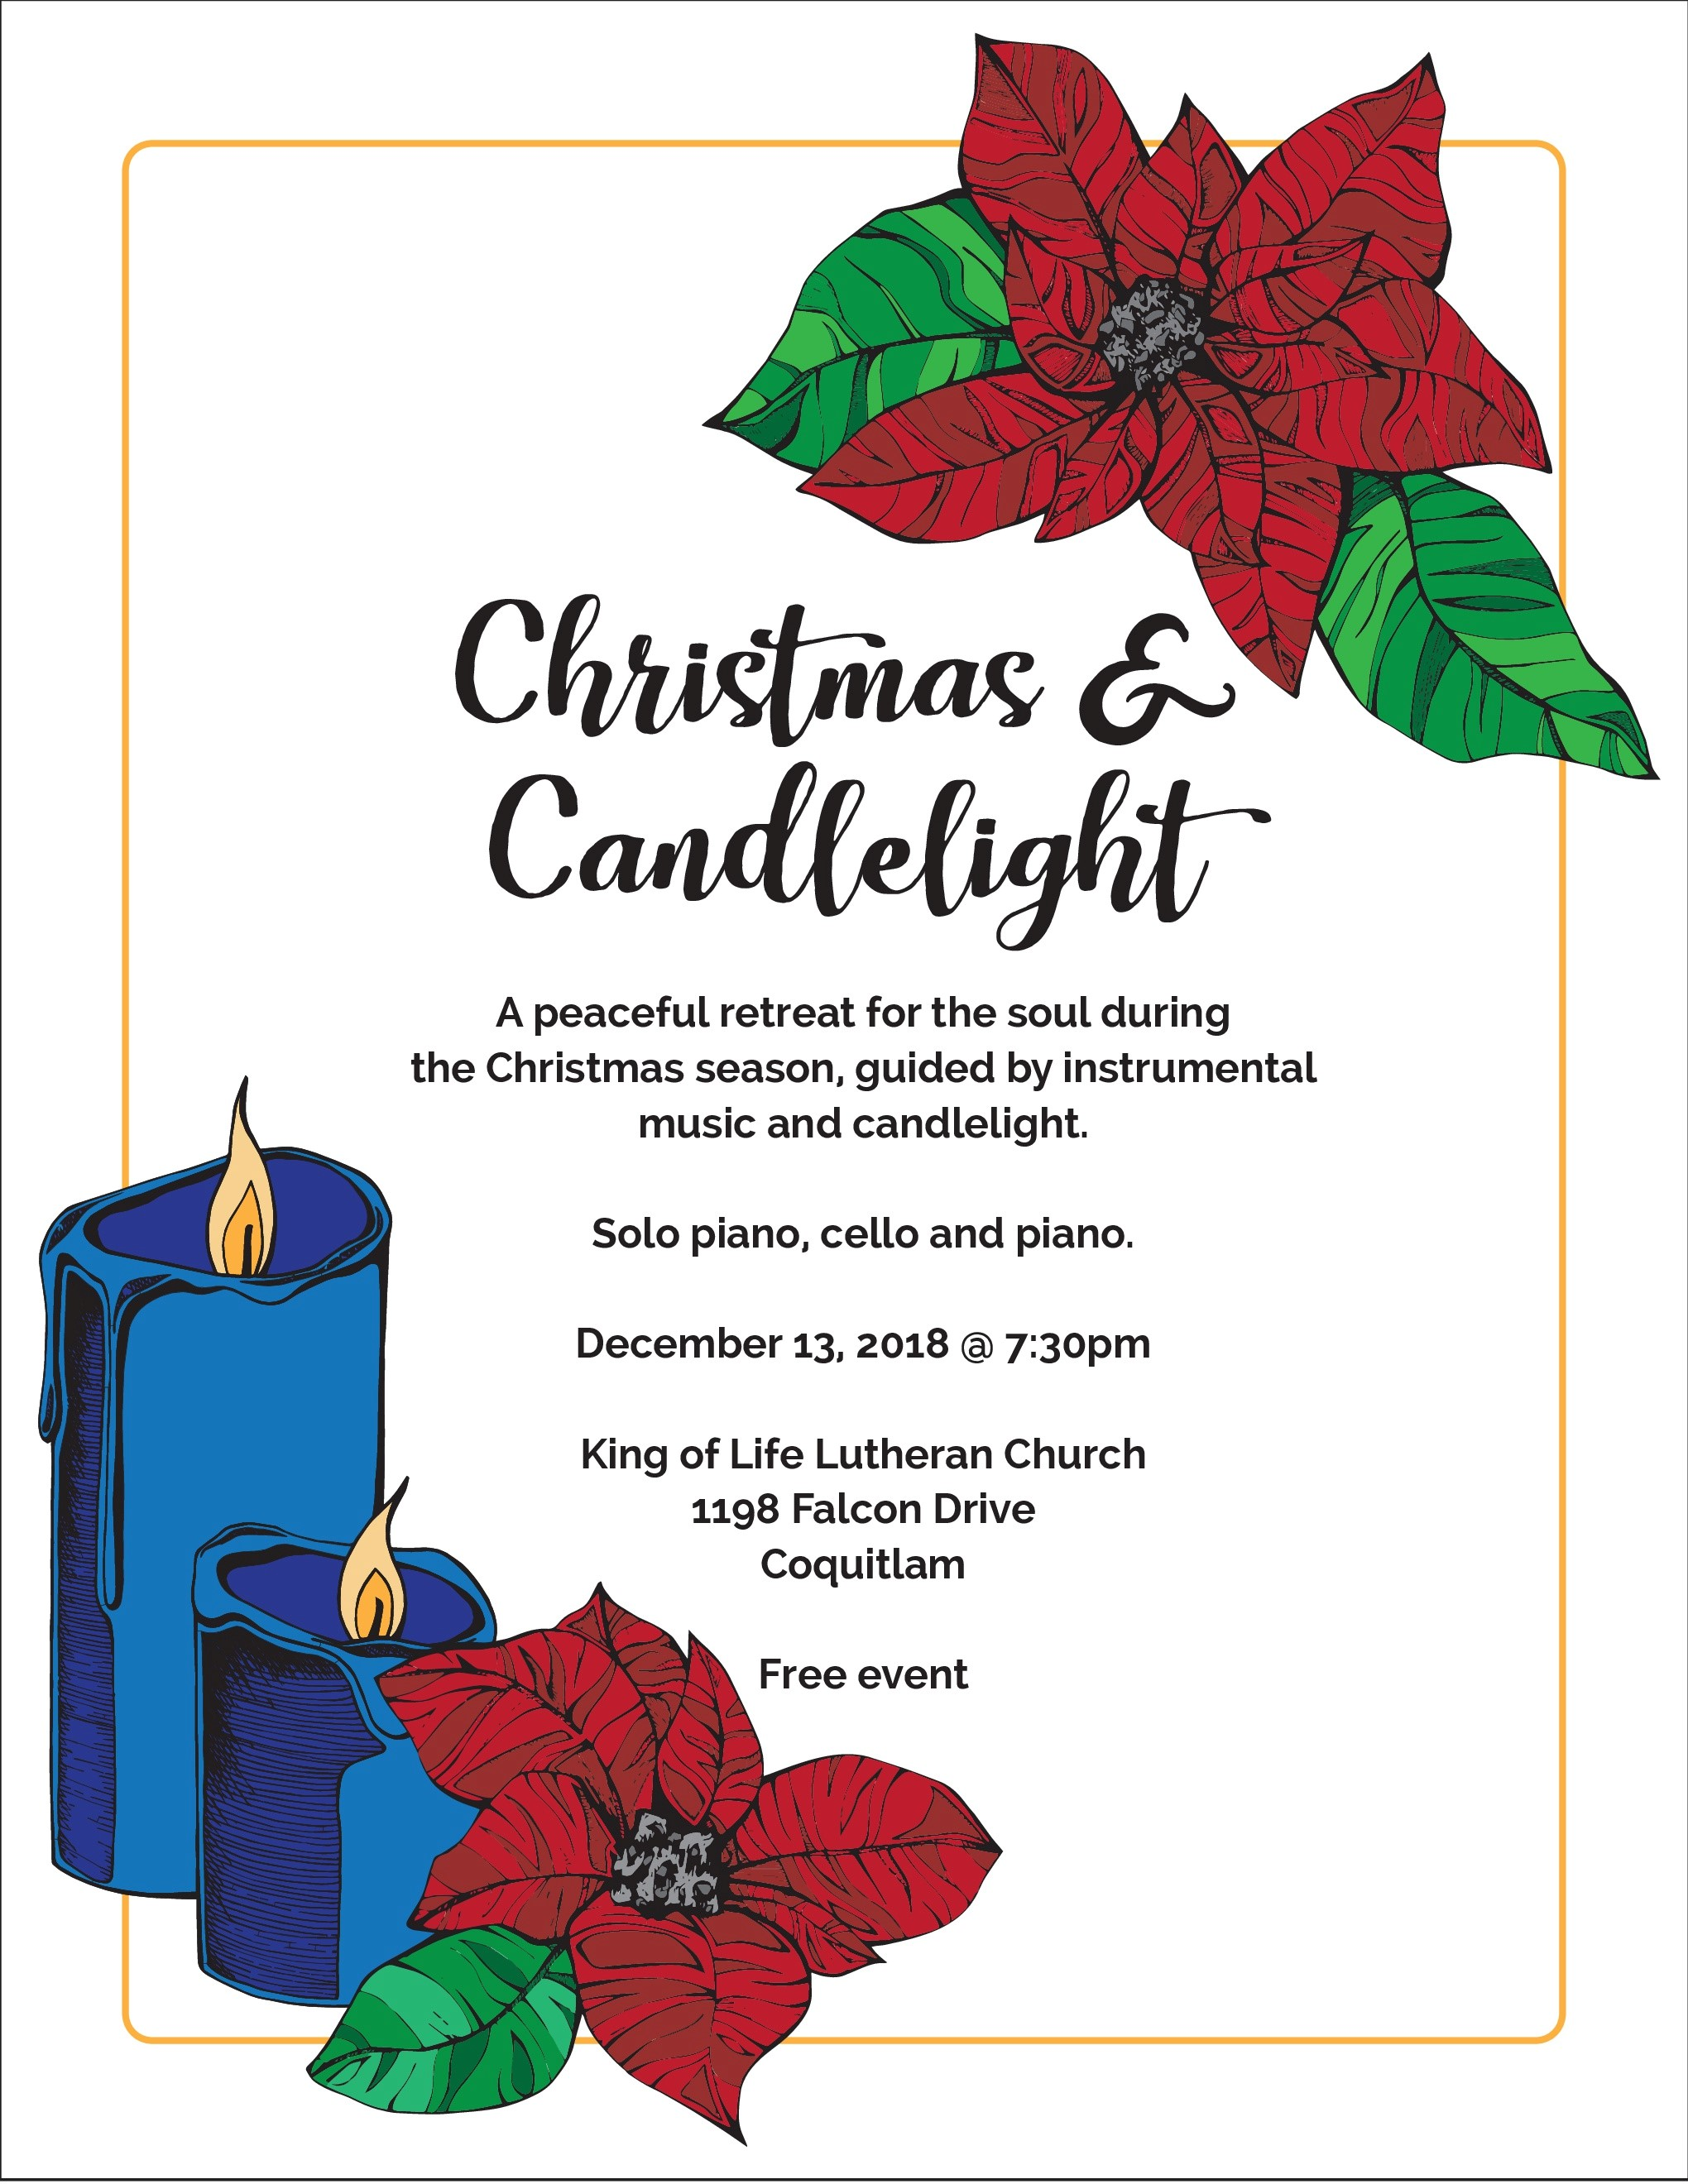 Christmas and Candlelight A peaceful retreat for the soul guided by instrumental music and candlelight Dec 13, 7:30pm